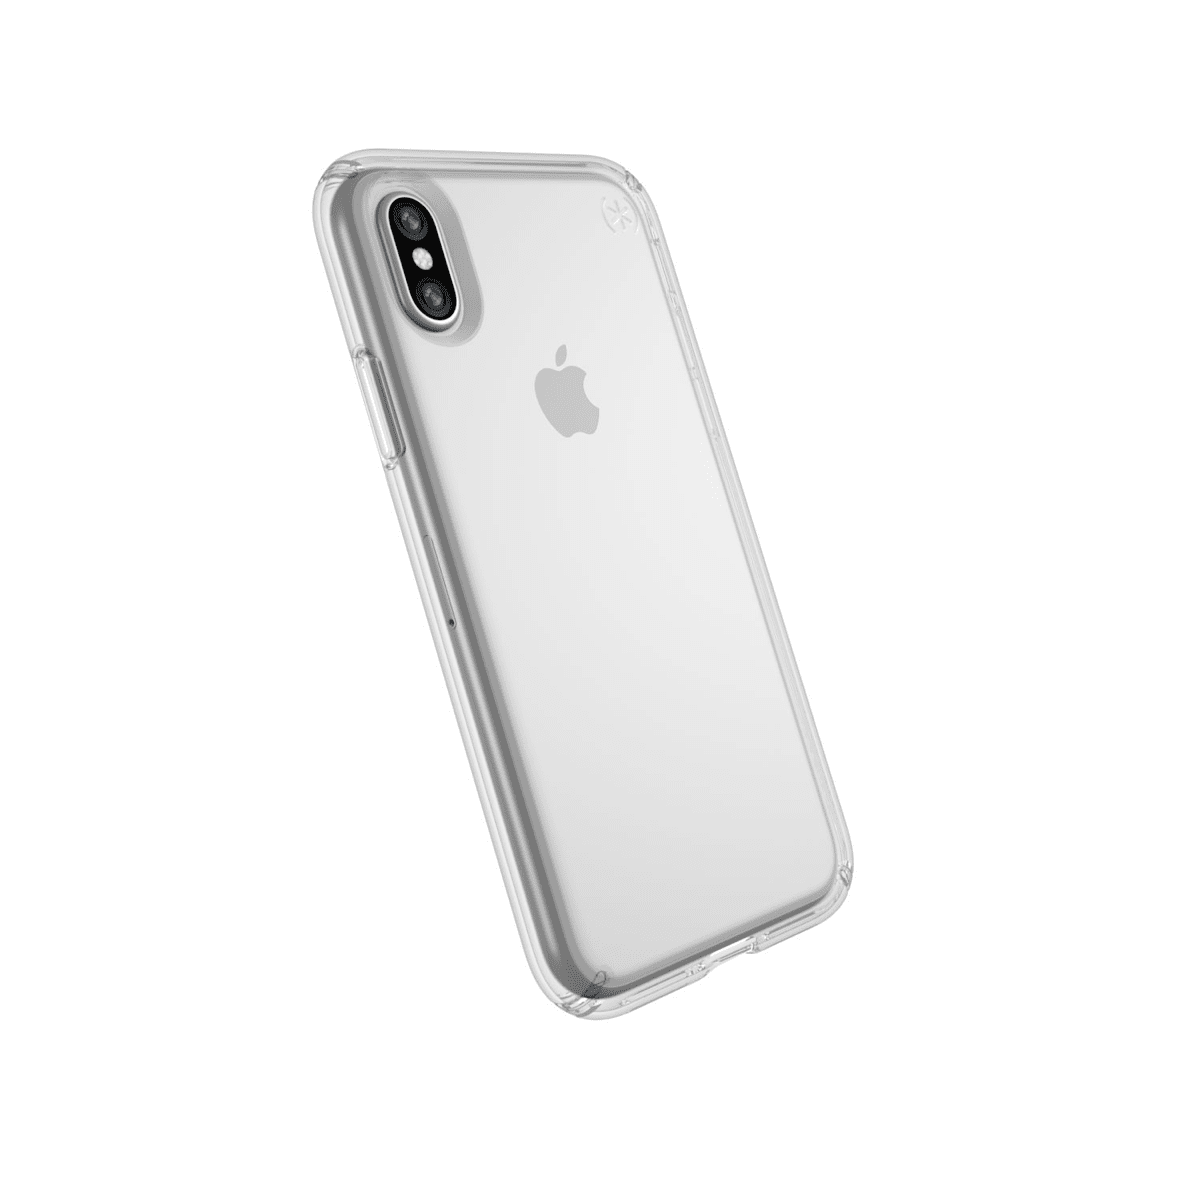 6 Clear iPhone X Cases to Show Off Your Purchase